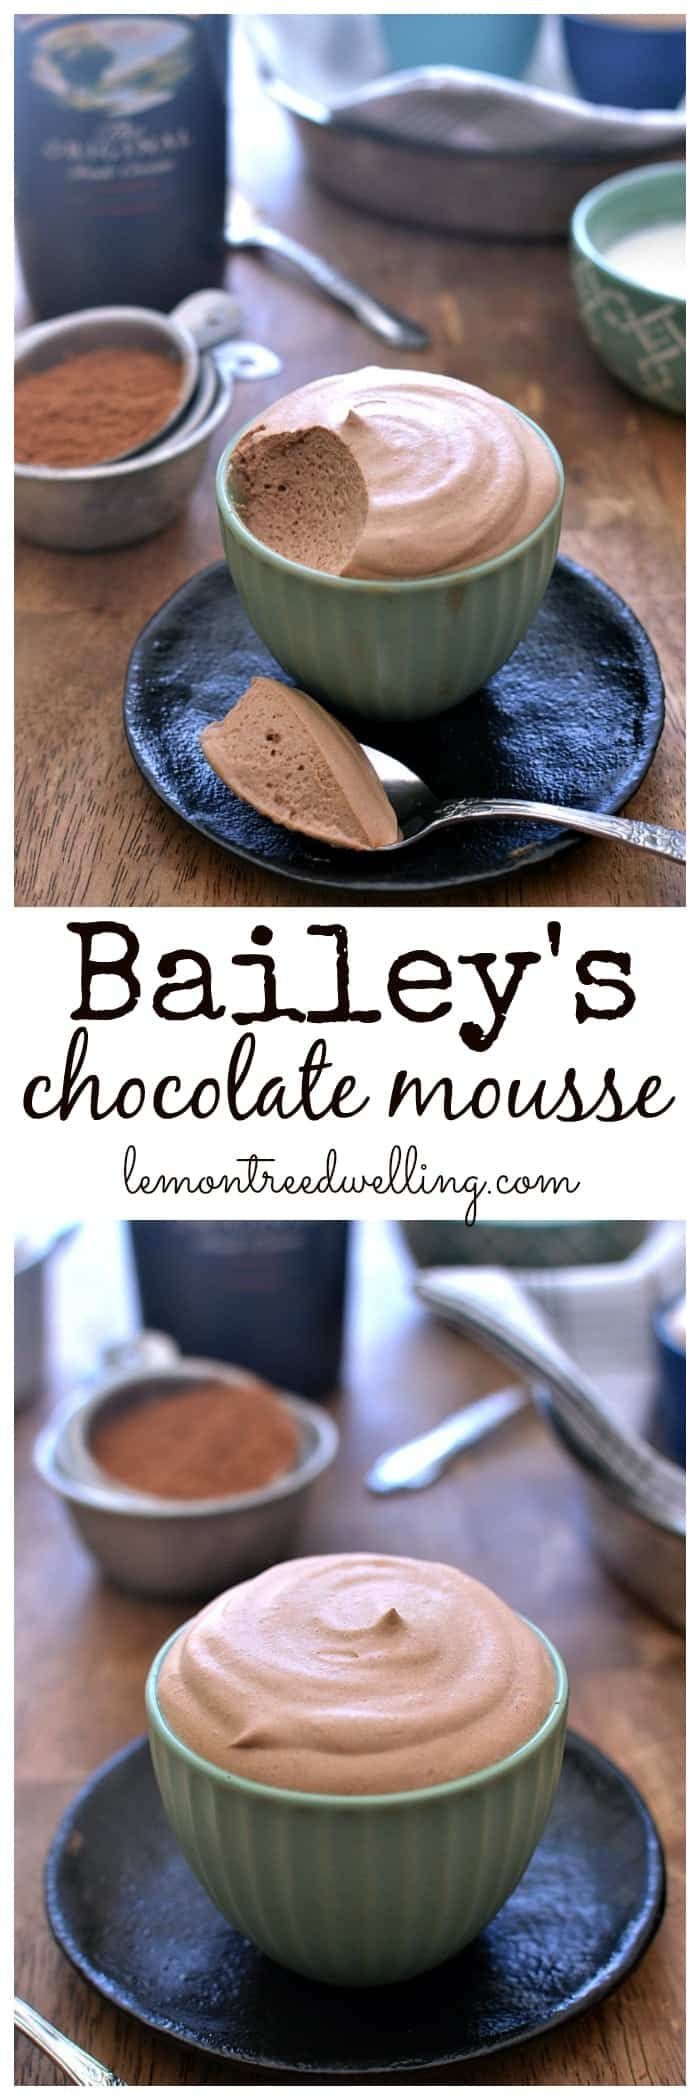 Baileys chocolate mousse is deliciously light, fluffy chocolate mousse, infused with the sweet flavor of Baileys Irish Cream. Perfect St. Patrick's Day dessert recipe!  I had a moment the other day.....a moment where I started thinking about just how fun it would be to celebrate St. Patrick's Day 'adult-style'. I have those moments from time to time.....mainly because they're so far out of my reach....and the thought of ditching all responsibilities for a day sounds absolutely amazing!  The…